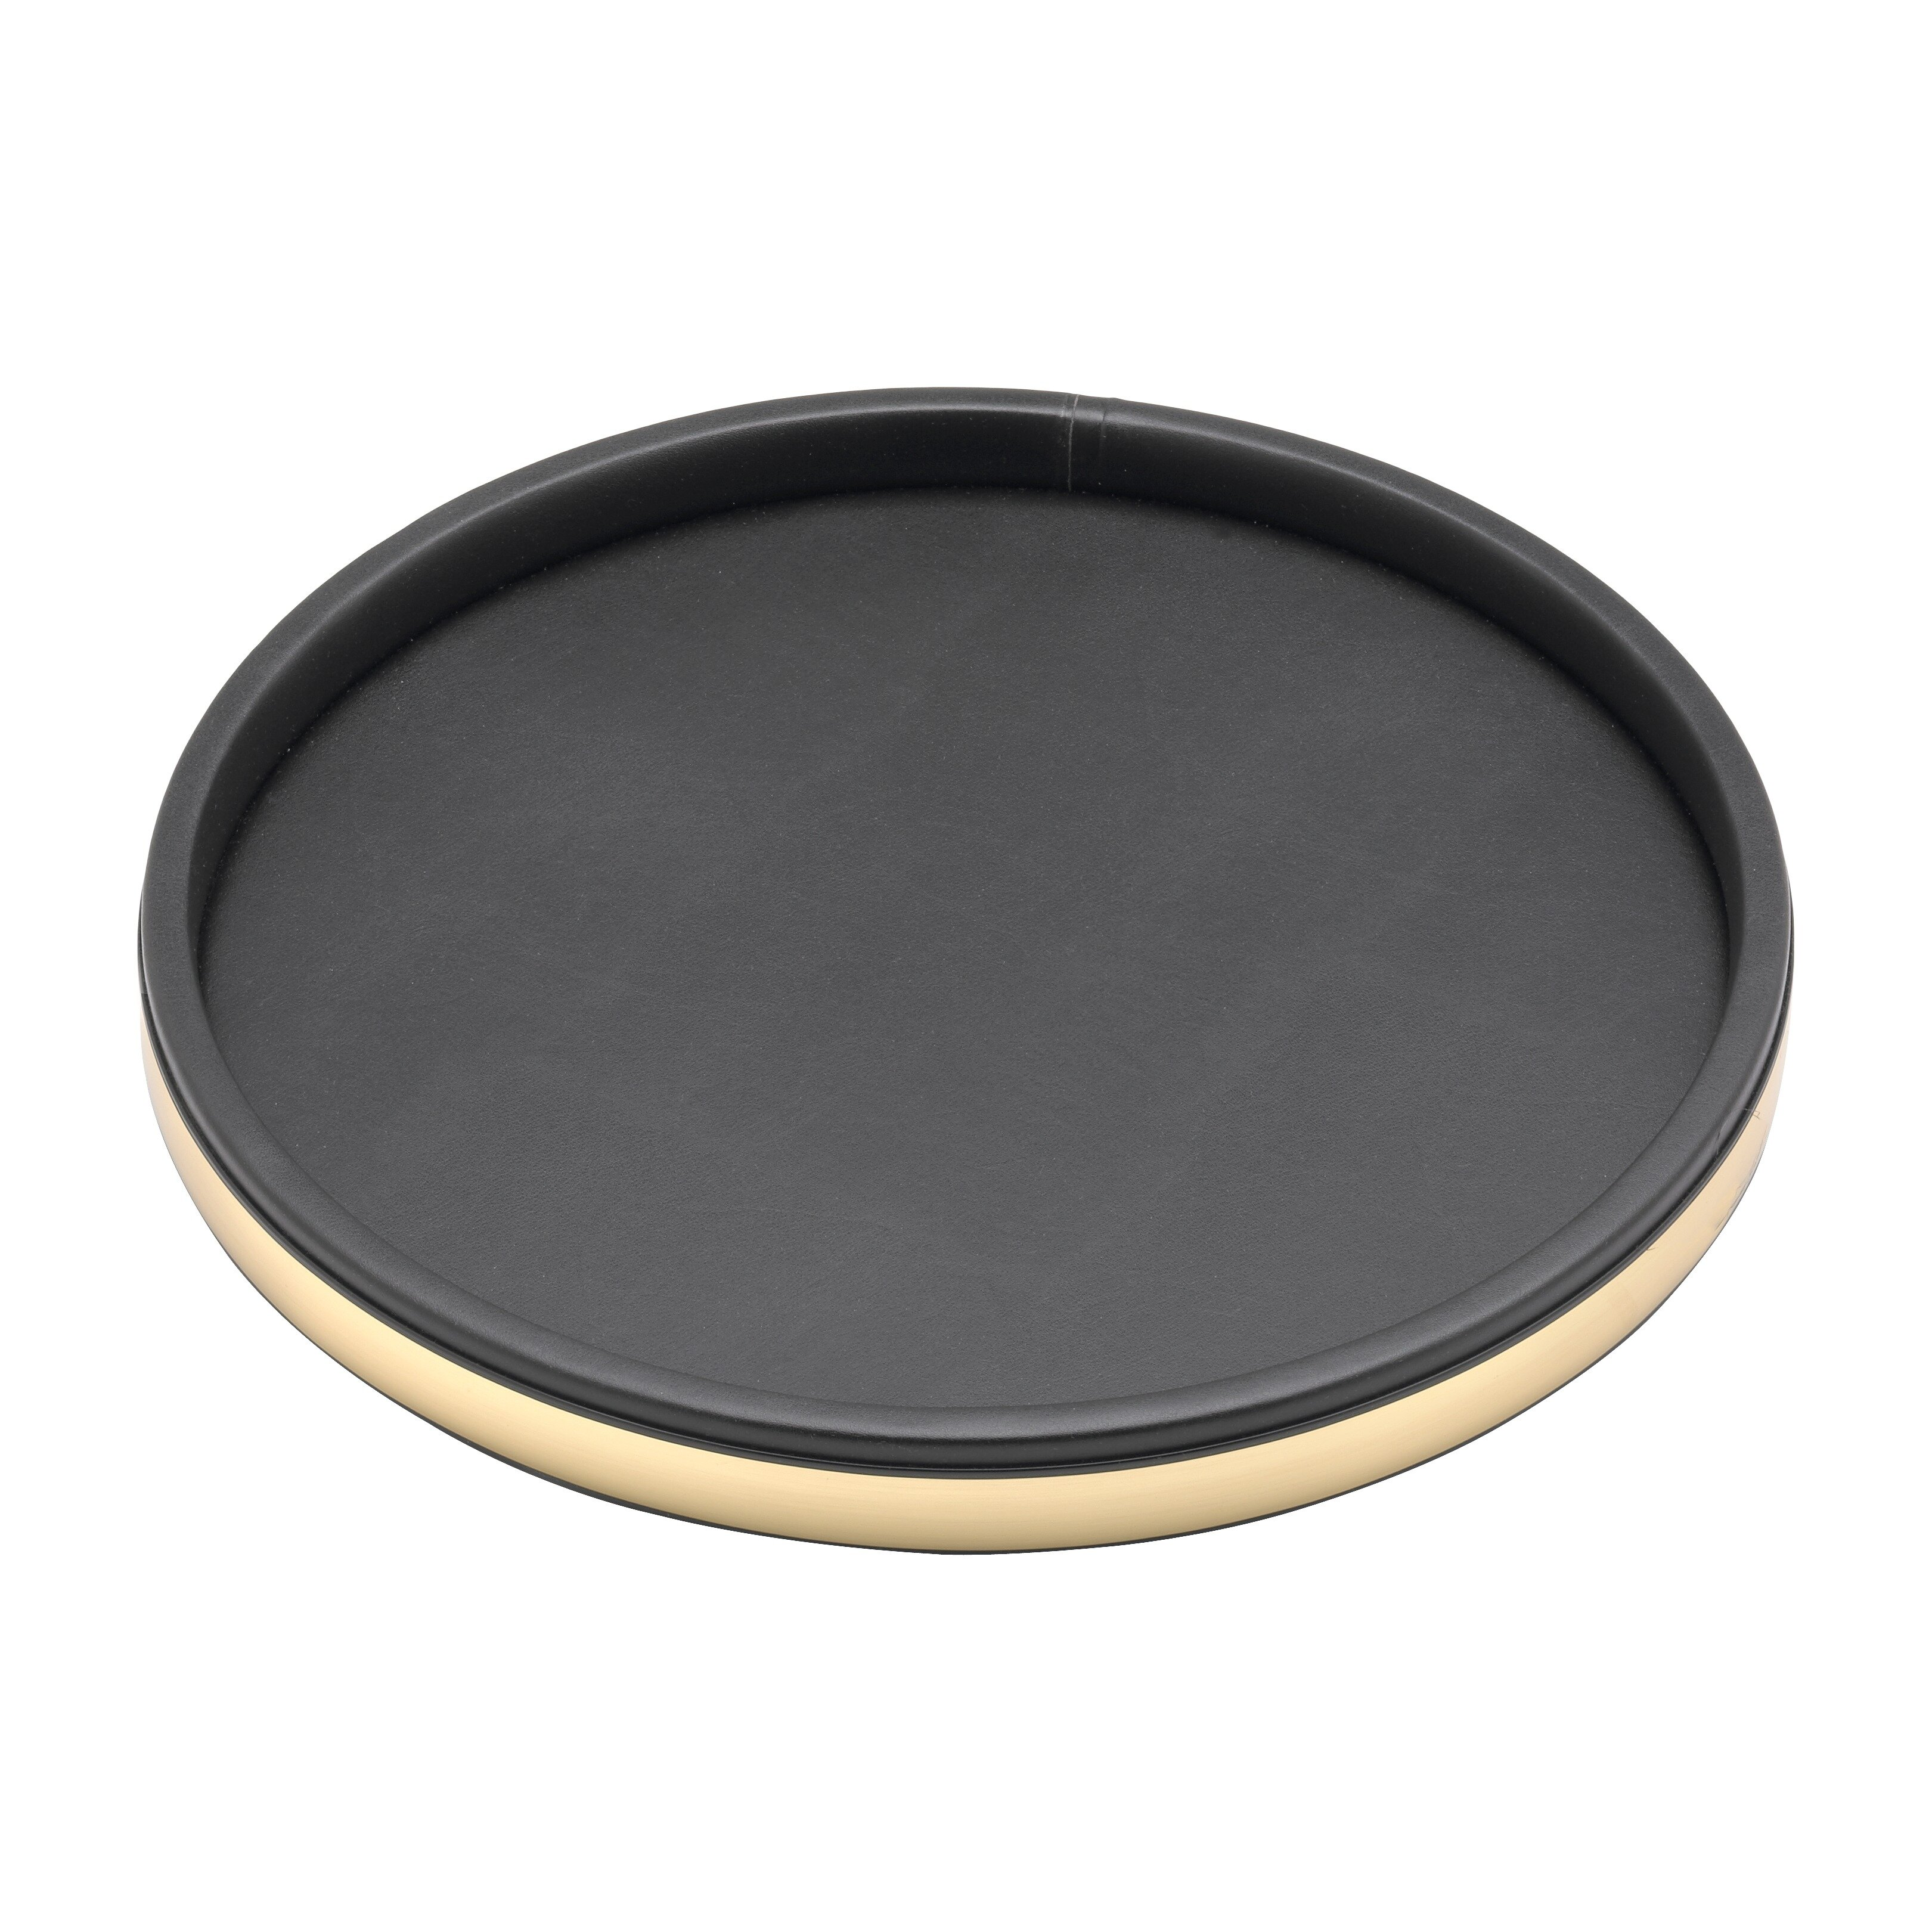 Mercer41 Gilchrist Deluxe Tray Reviews Wayfair